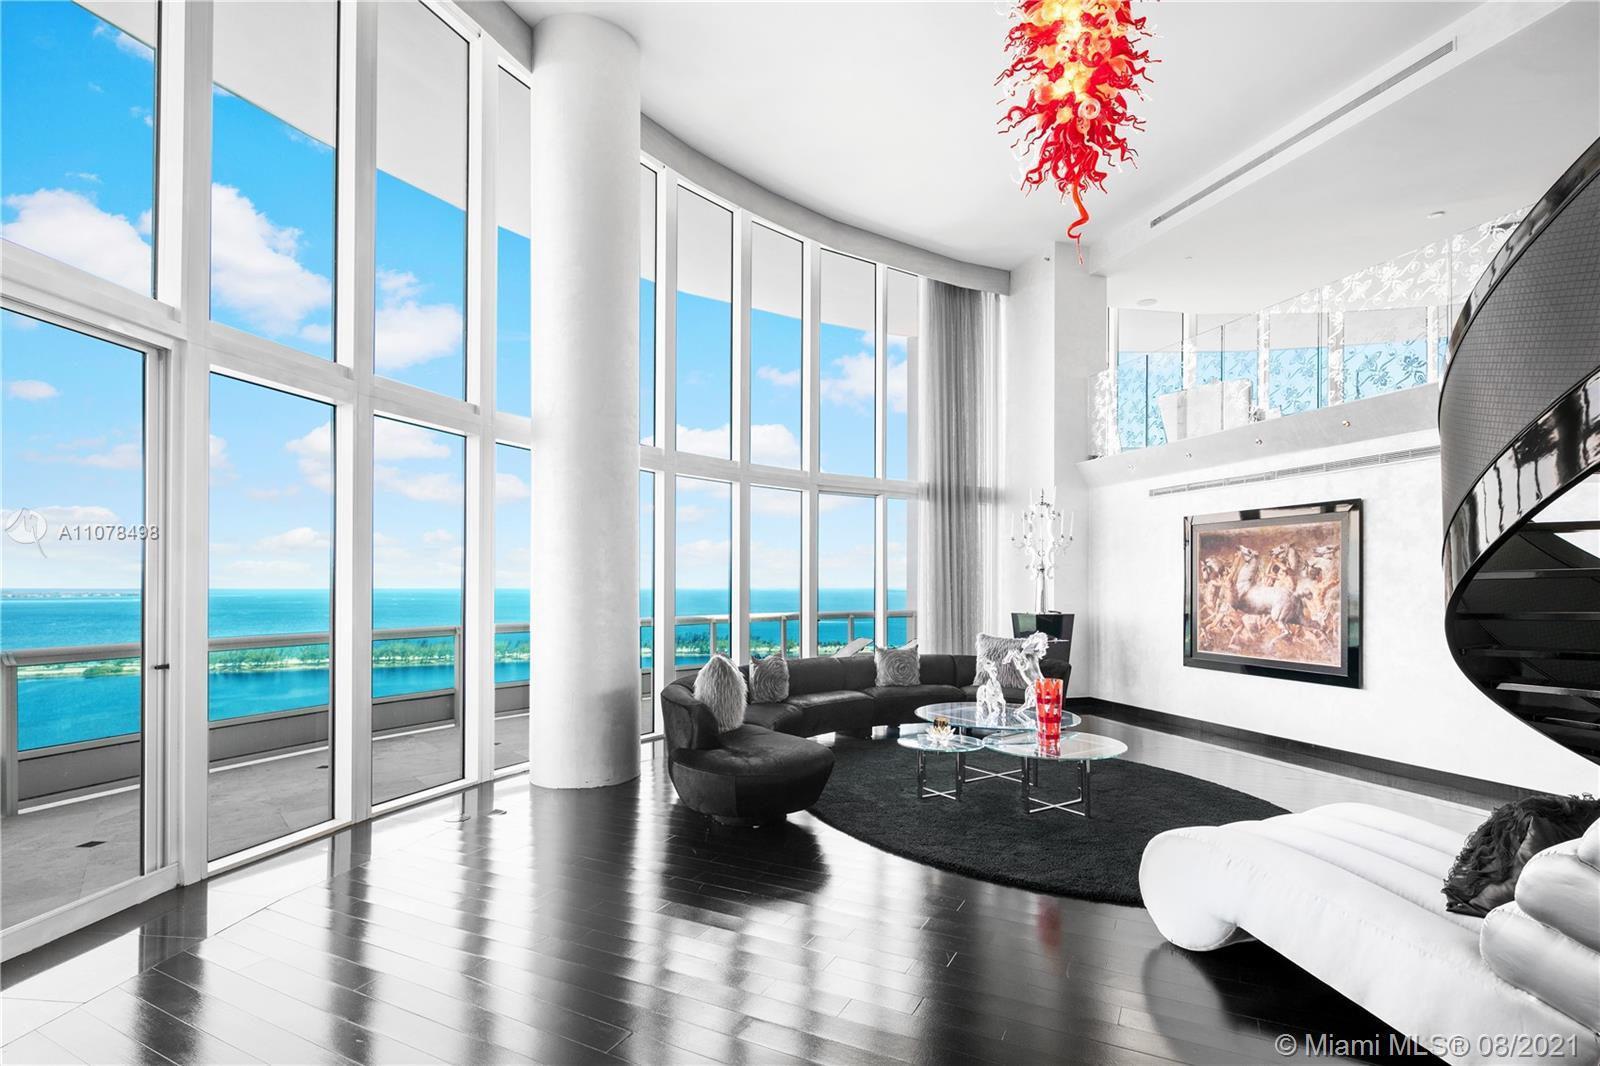 Located in one of the most sought-after addresses on the 31st floor in Brickell's iconic Santa Maria